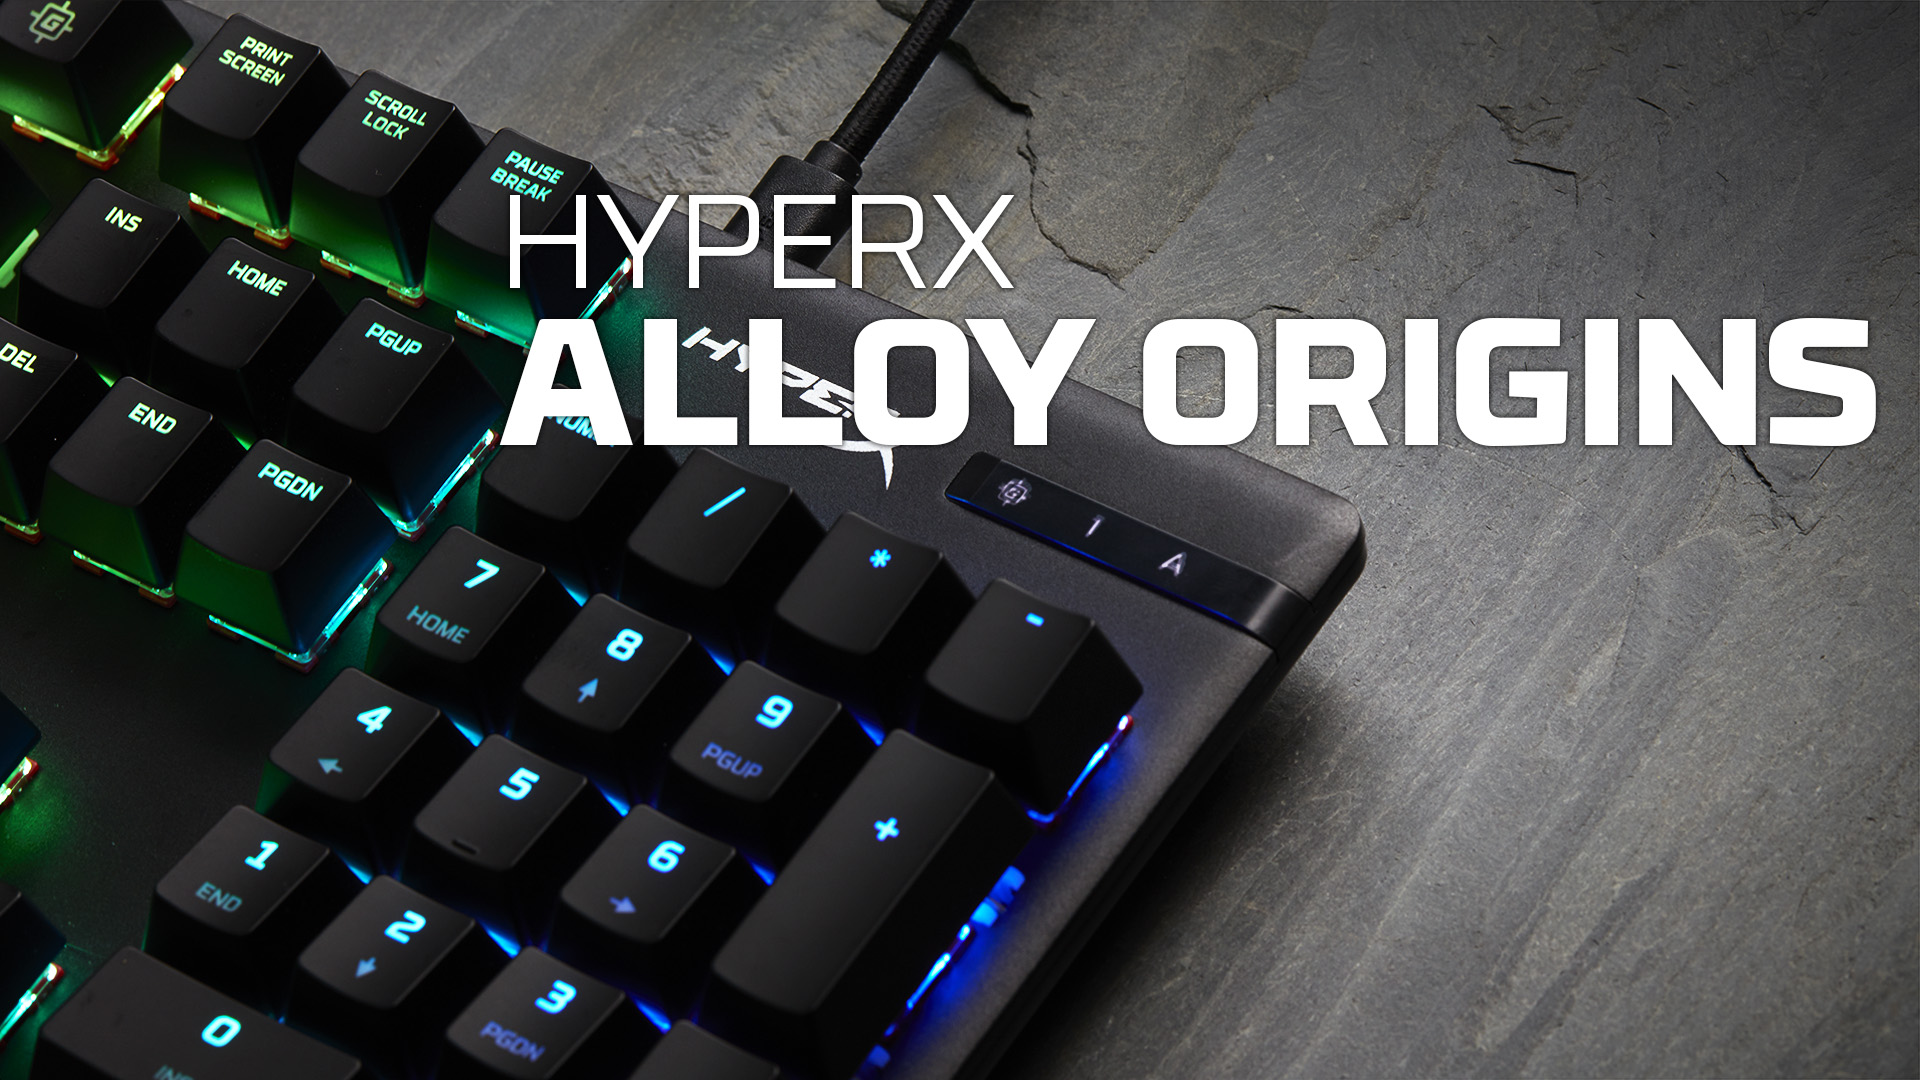 HyperX Alloy Origins - Mechanical Gaming Keyboard, Software-Controlled Light & Macro Customization, Compact Form Factor, RGB LED Backlit - Linear HyperX Red Switch